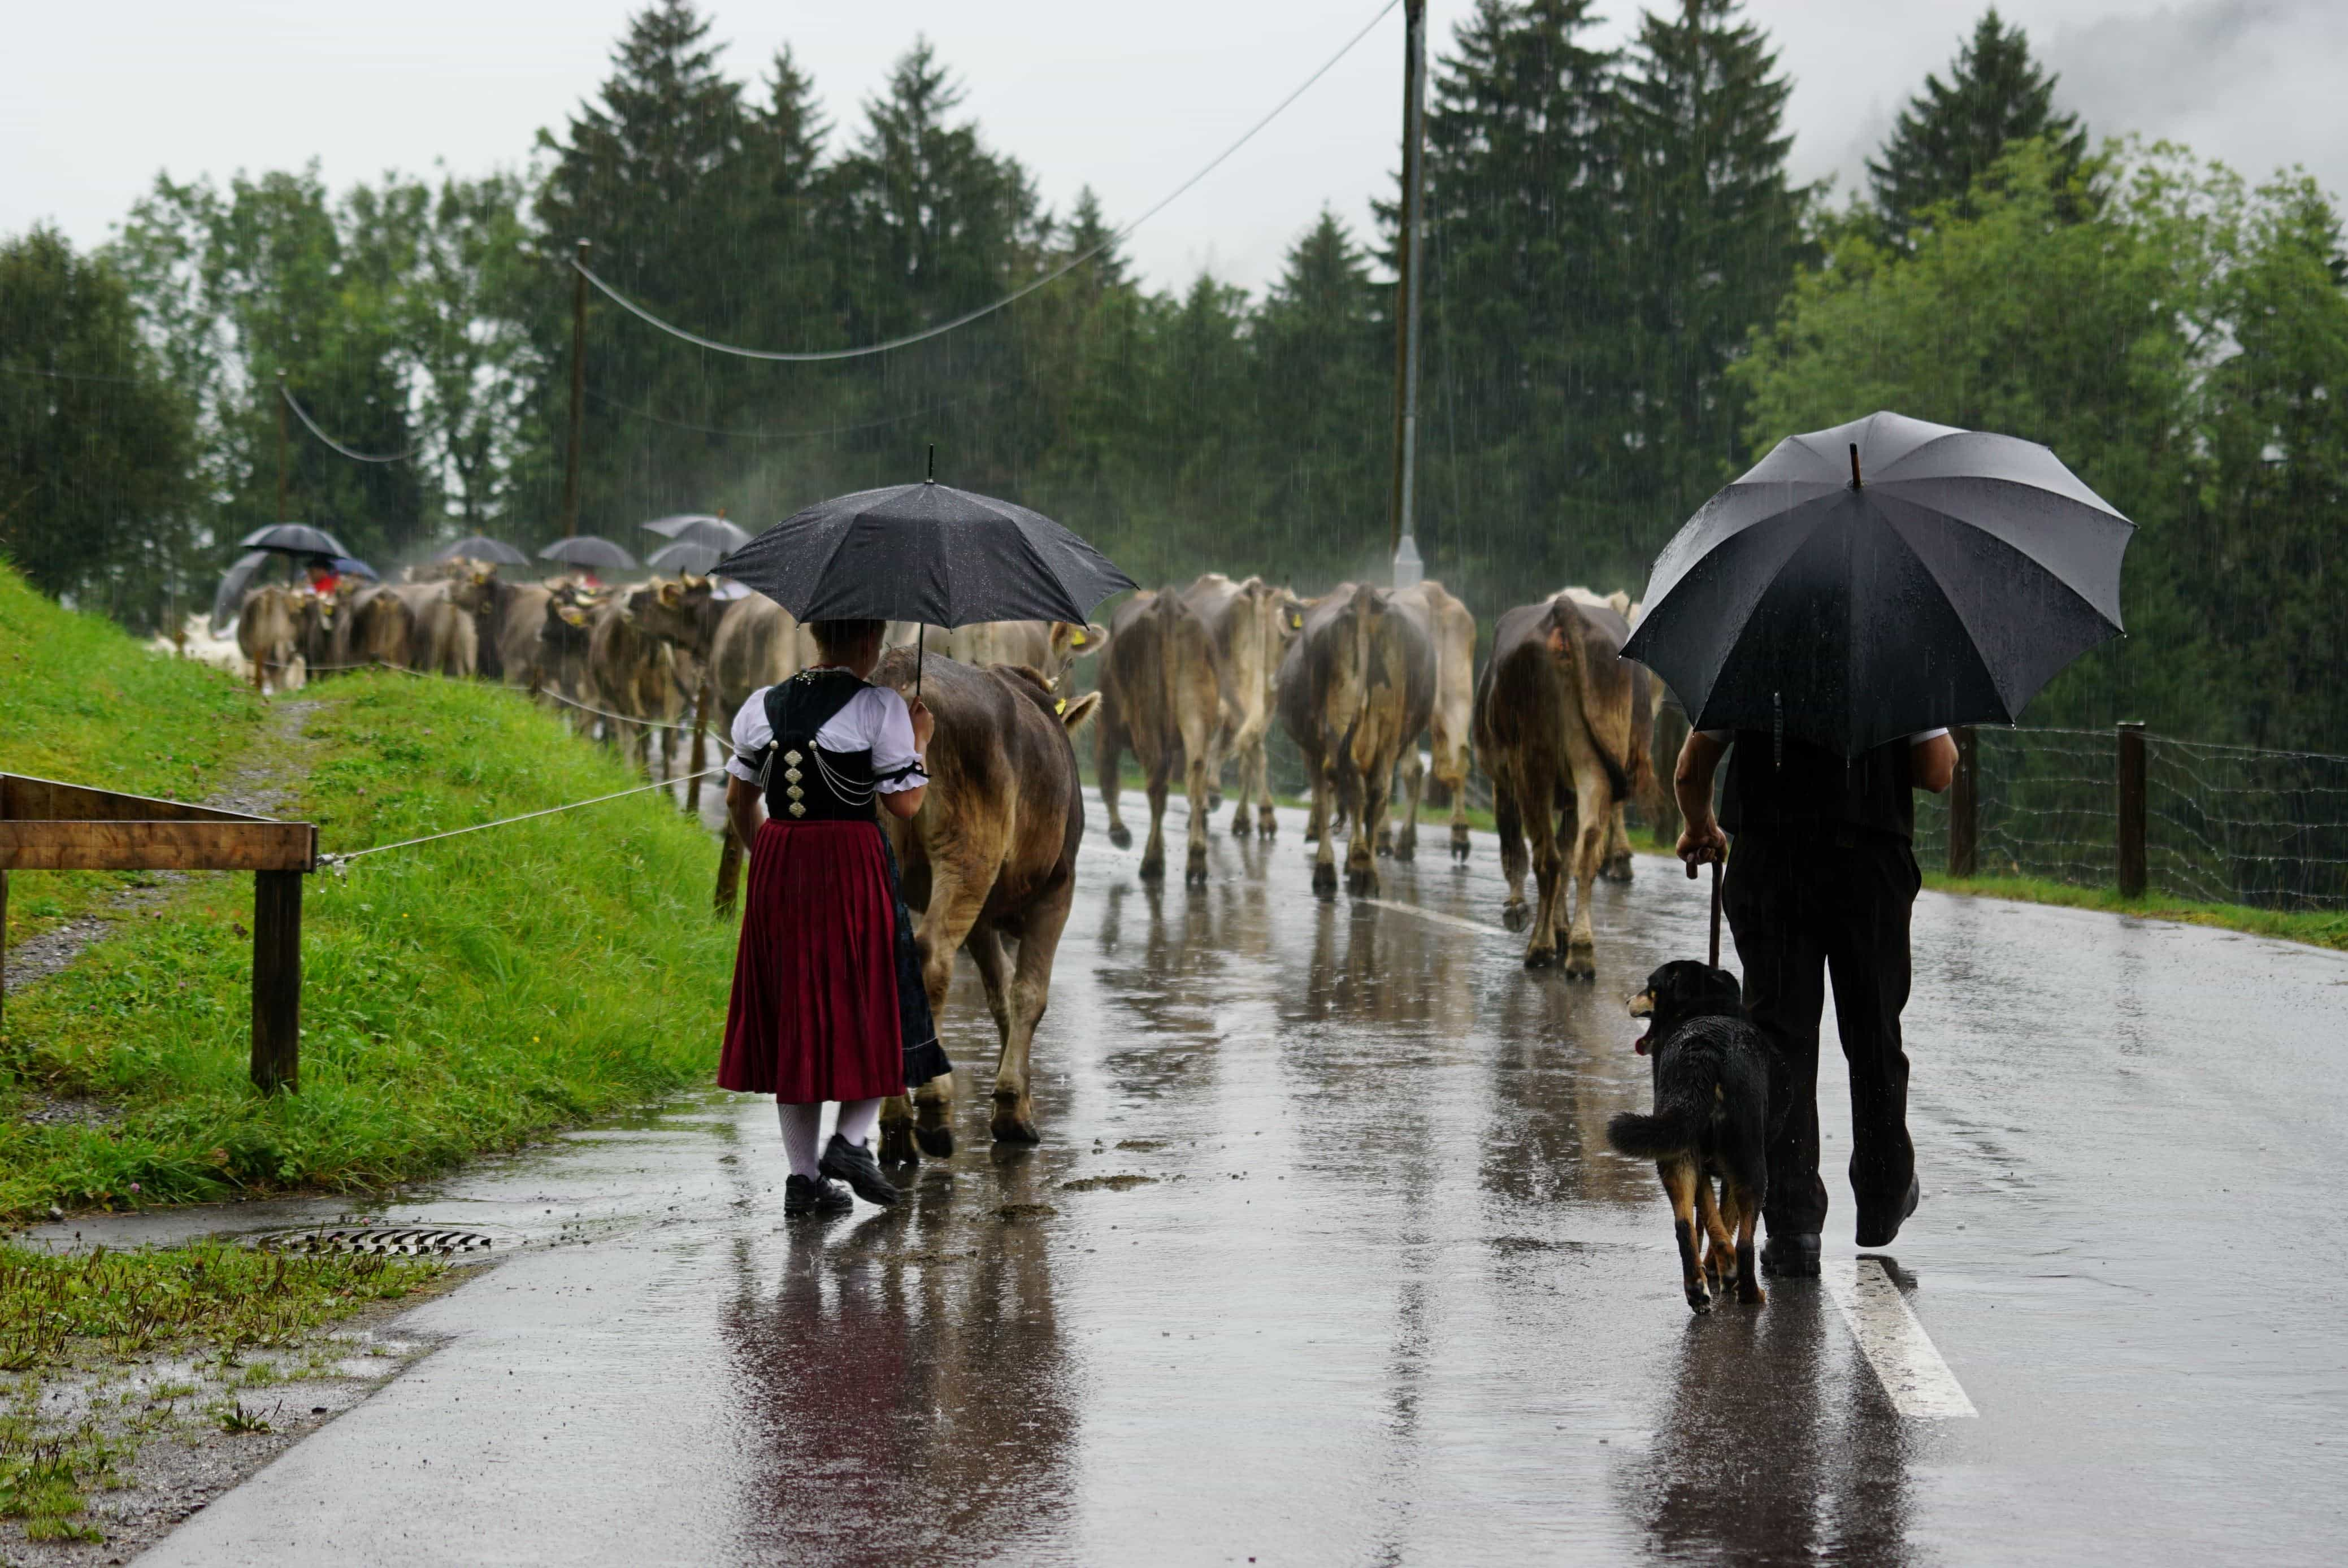 Free Picture People Umbrella Rain Cattle Sky Outdoor